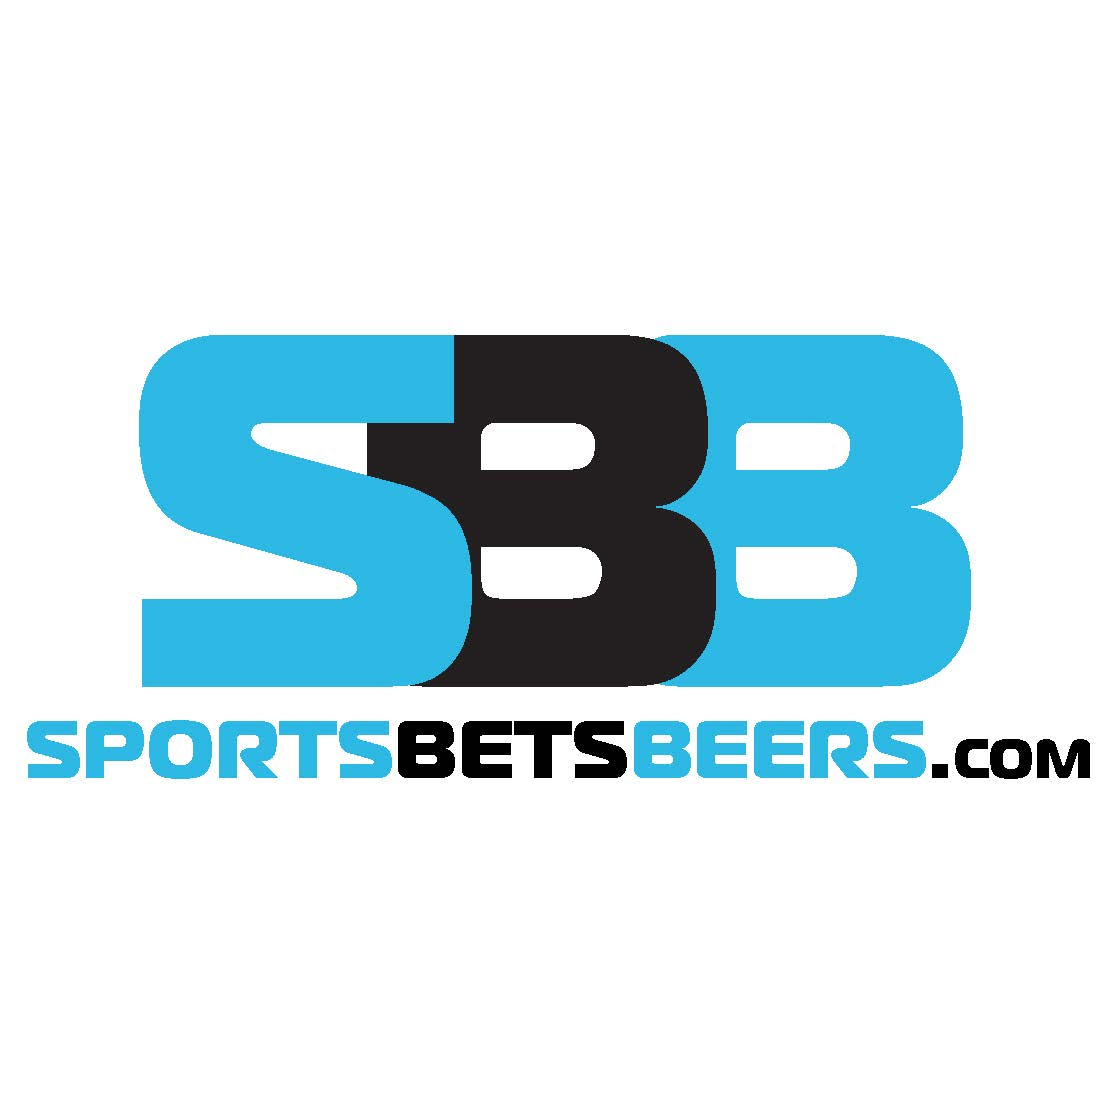 Sports Bets Beers Bloggers